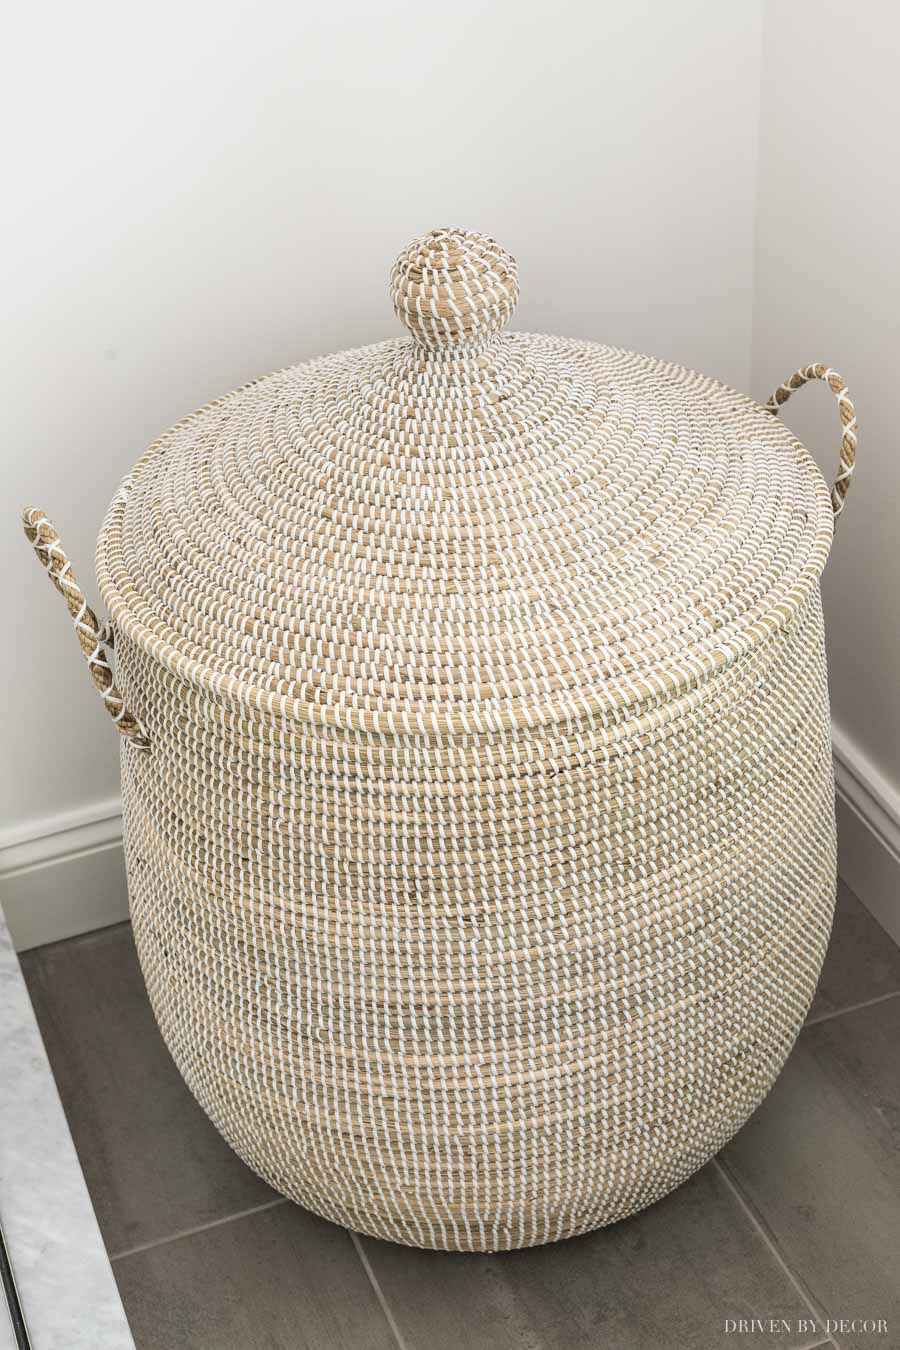 The prettiest basket to use as a hamper! One of the beautiful bathroom decor ideas in this post!